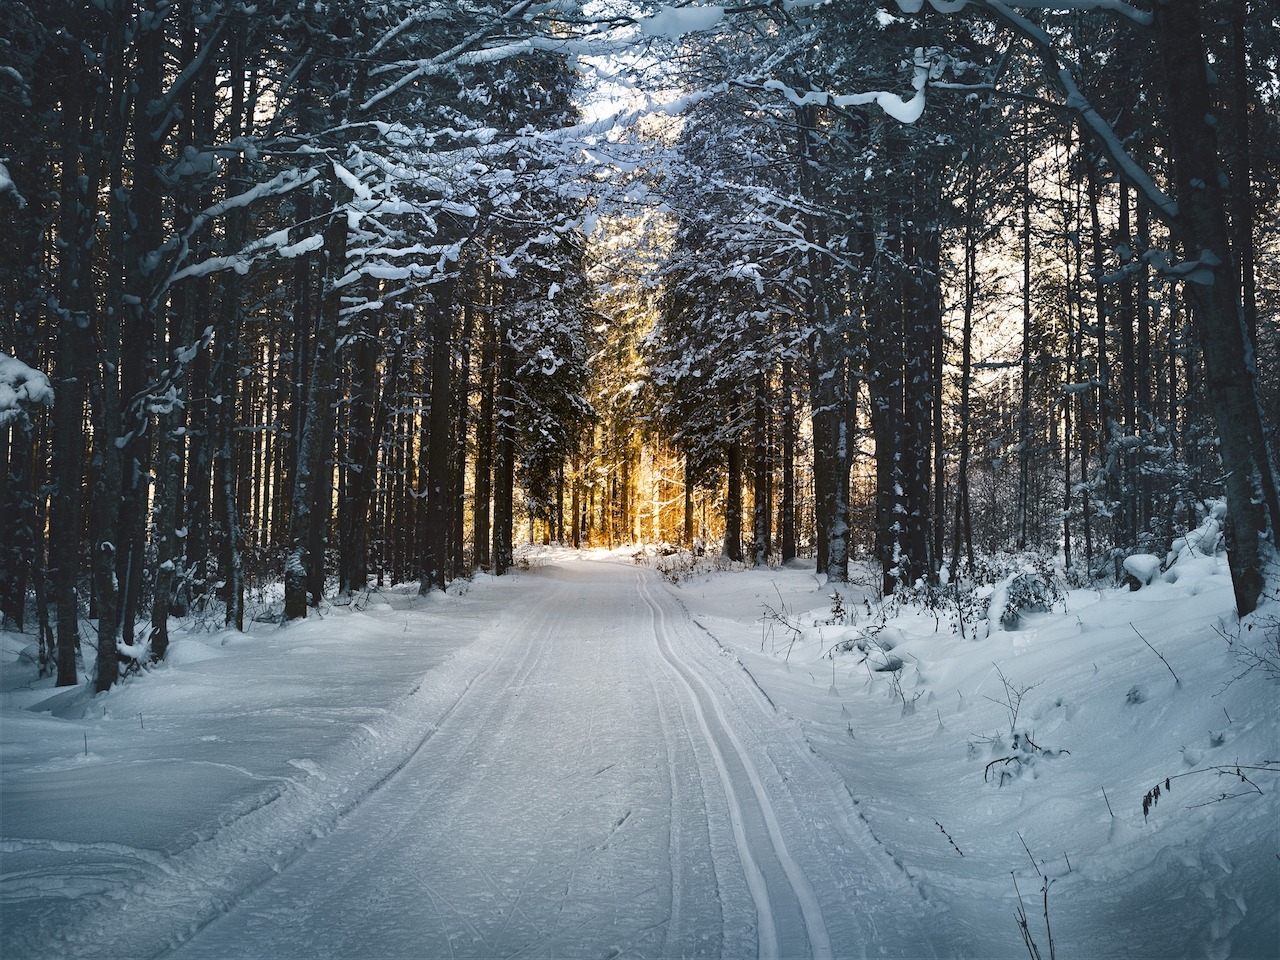 cross-country skiing in the forest